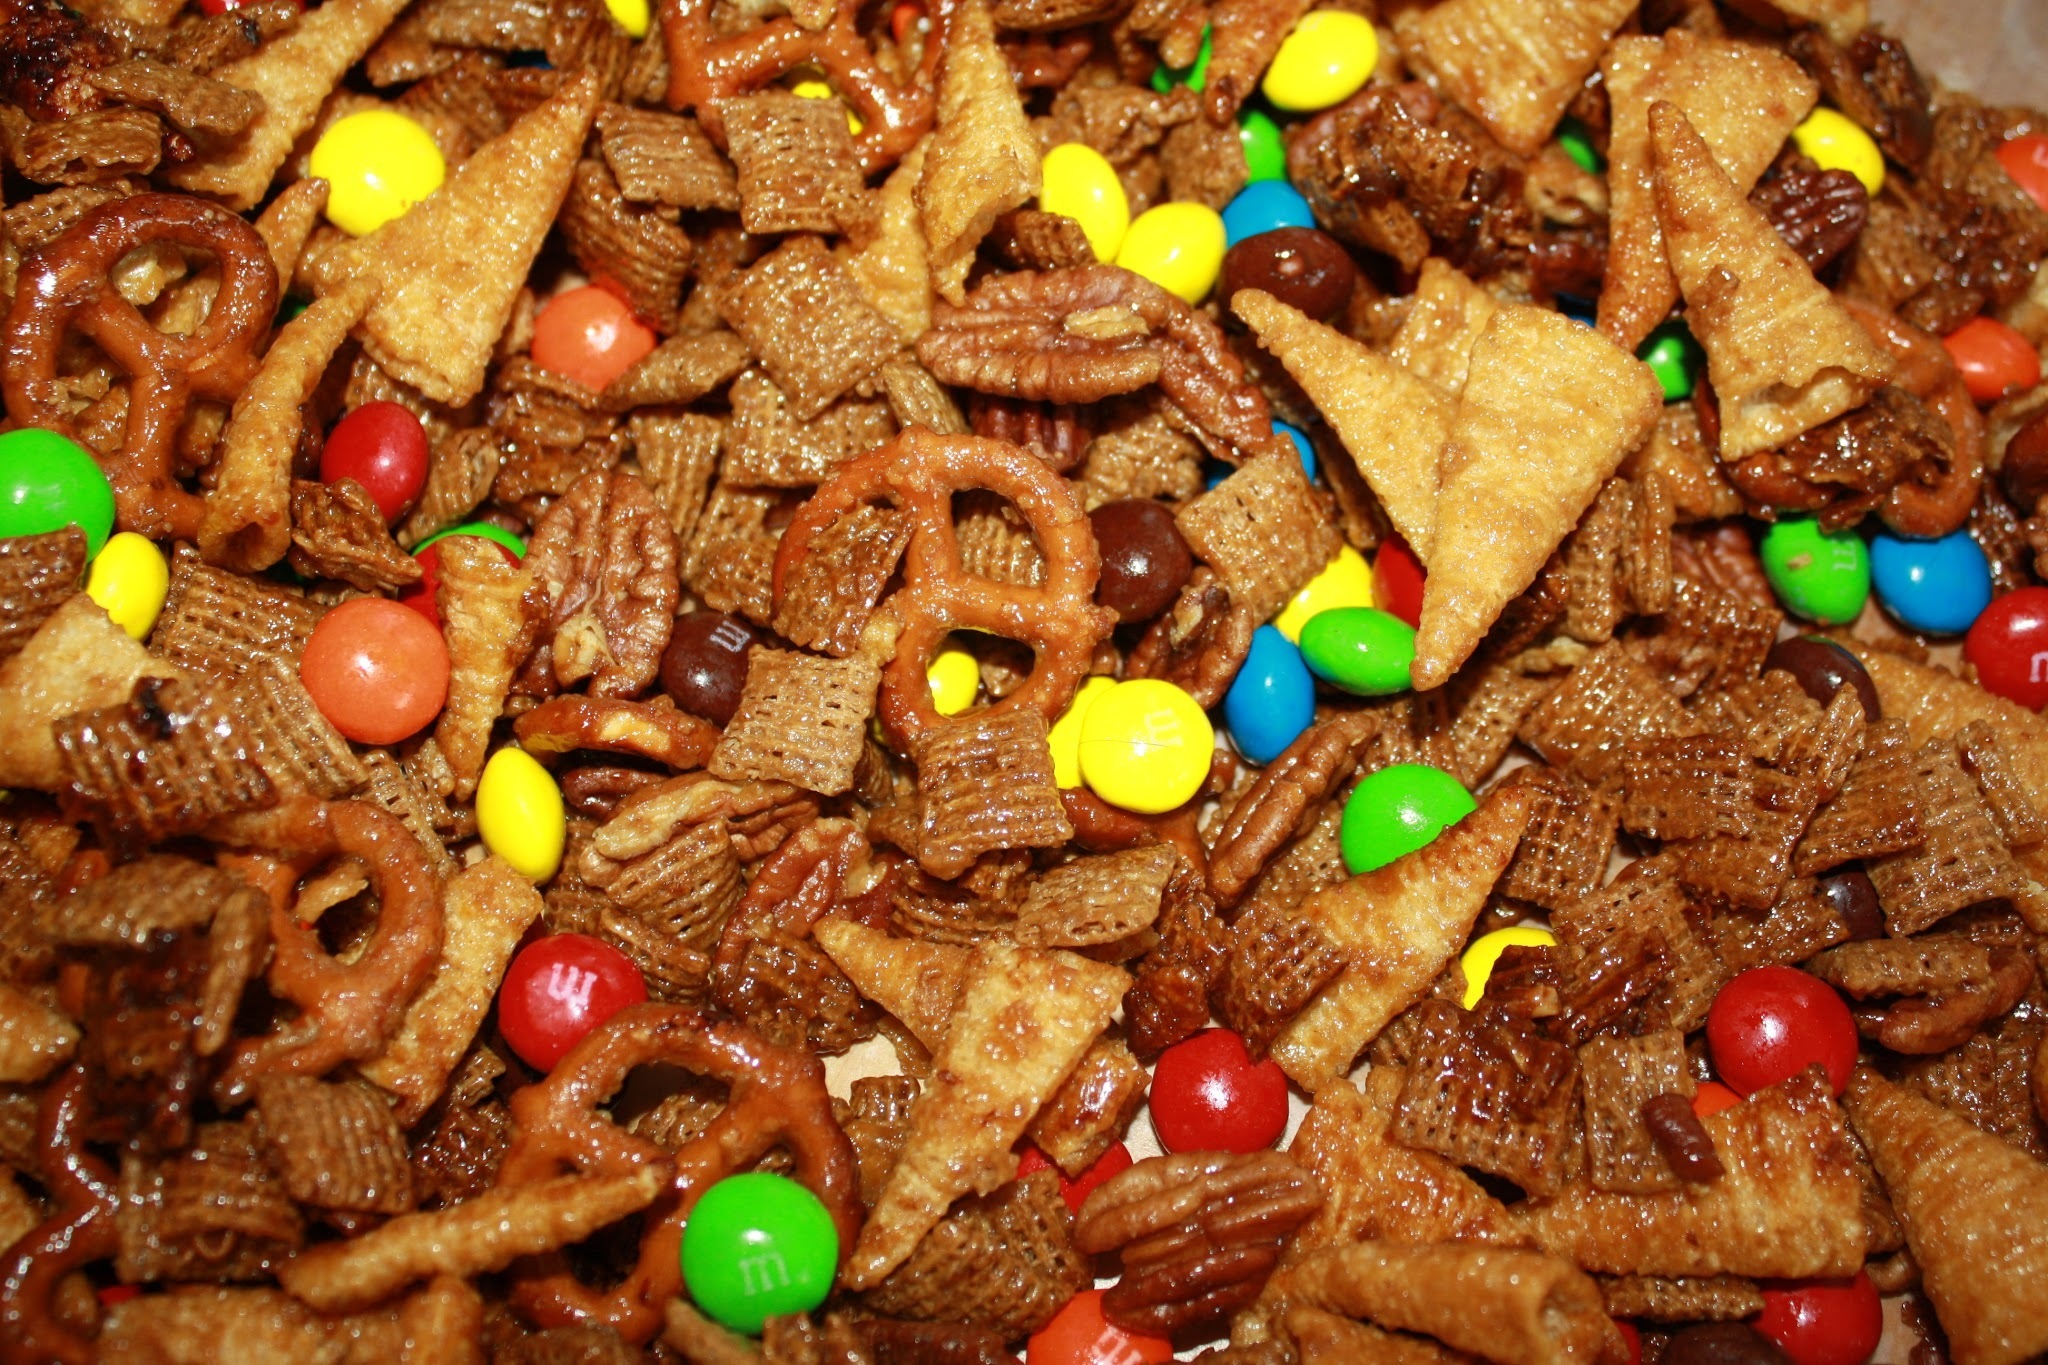 Sweet n' Salty Snack Mix